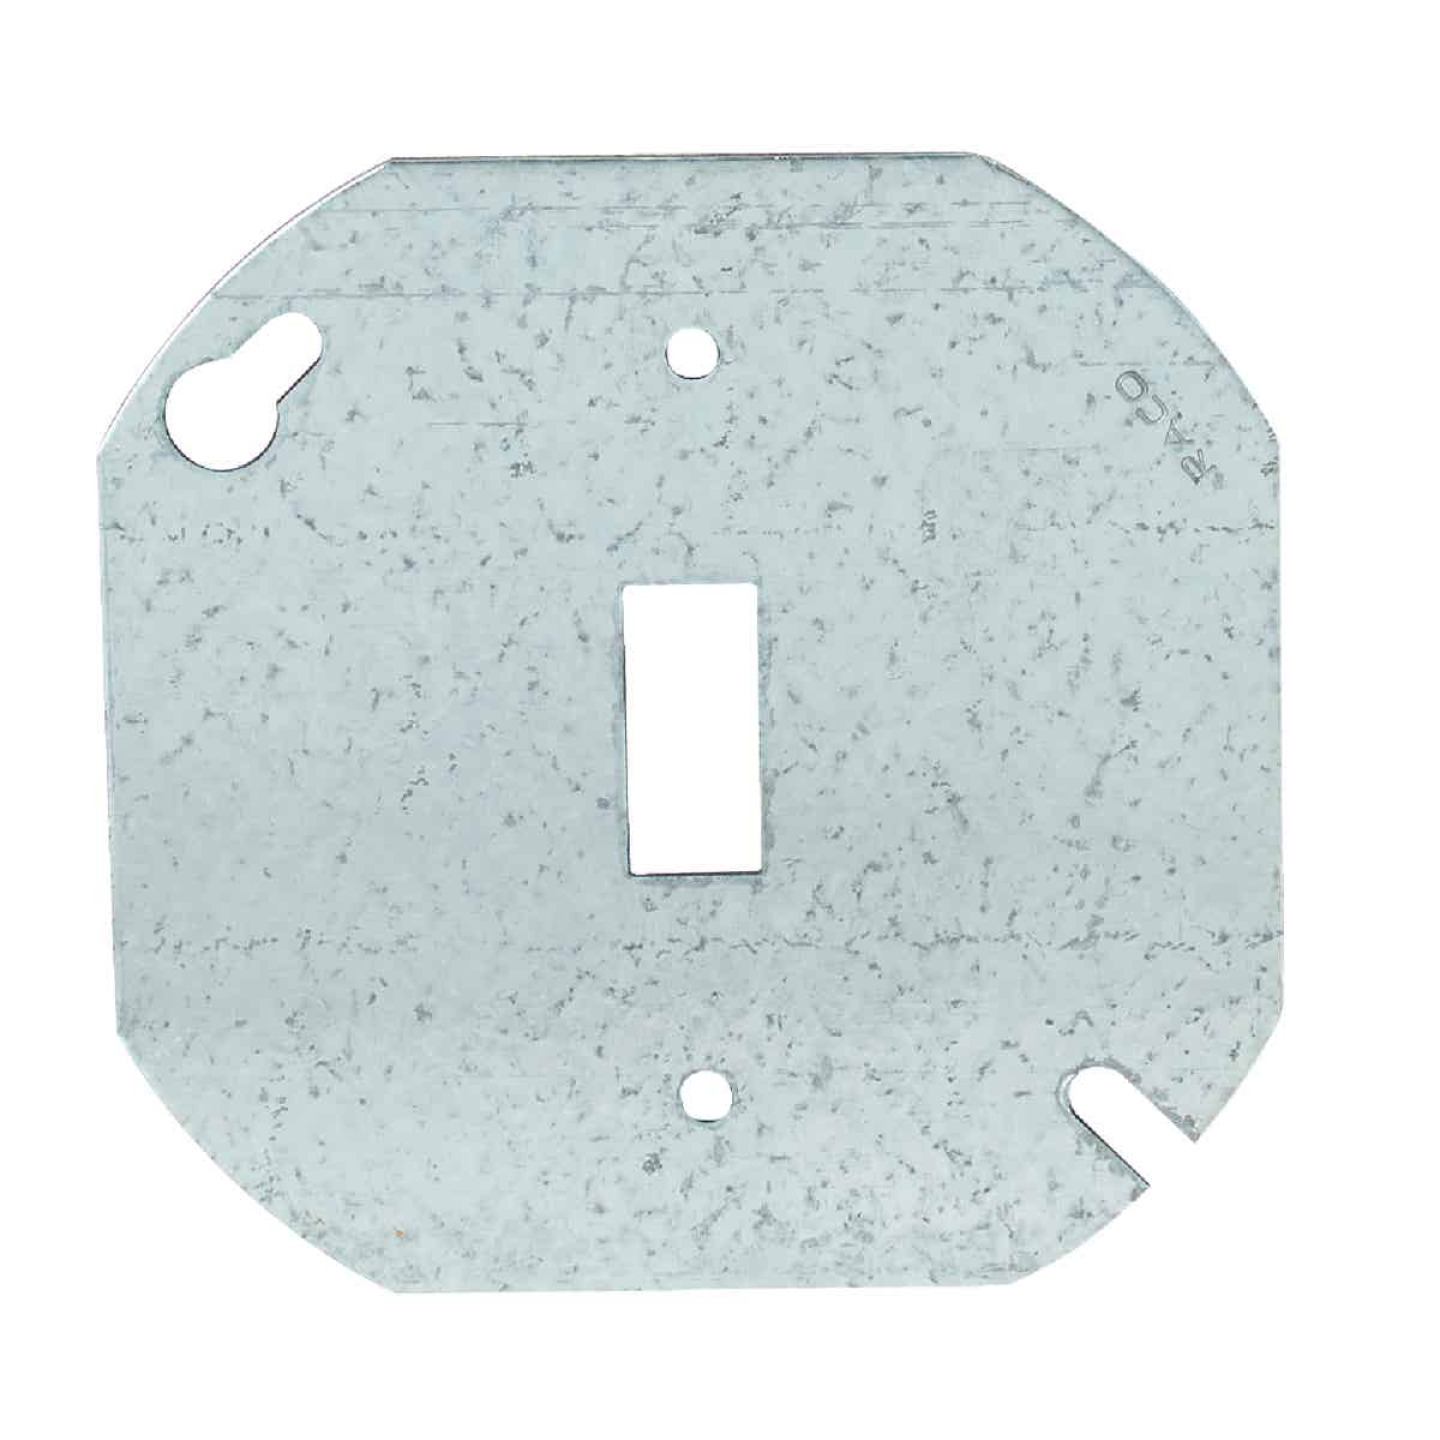 Hubbell 4 In. Single Toggle Switch Silver Round Box Cover Image 1